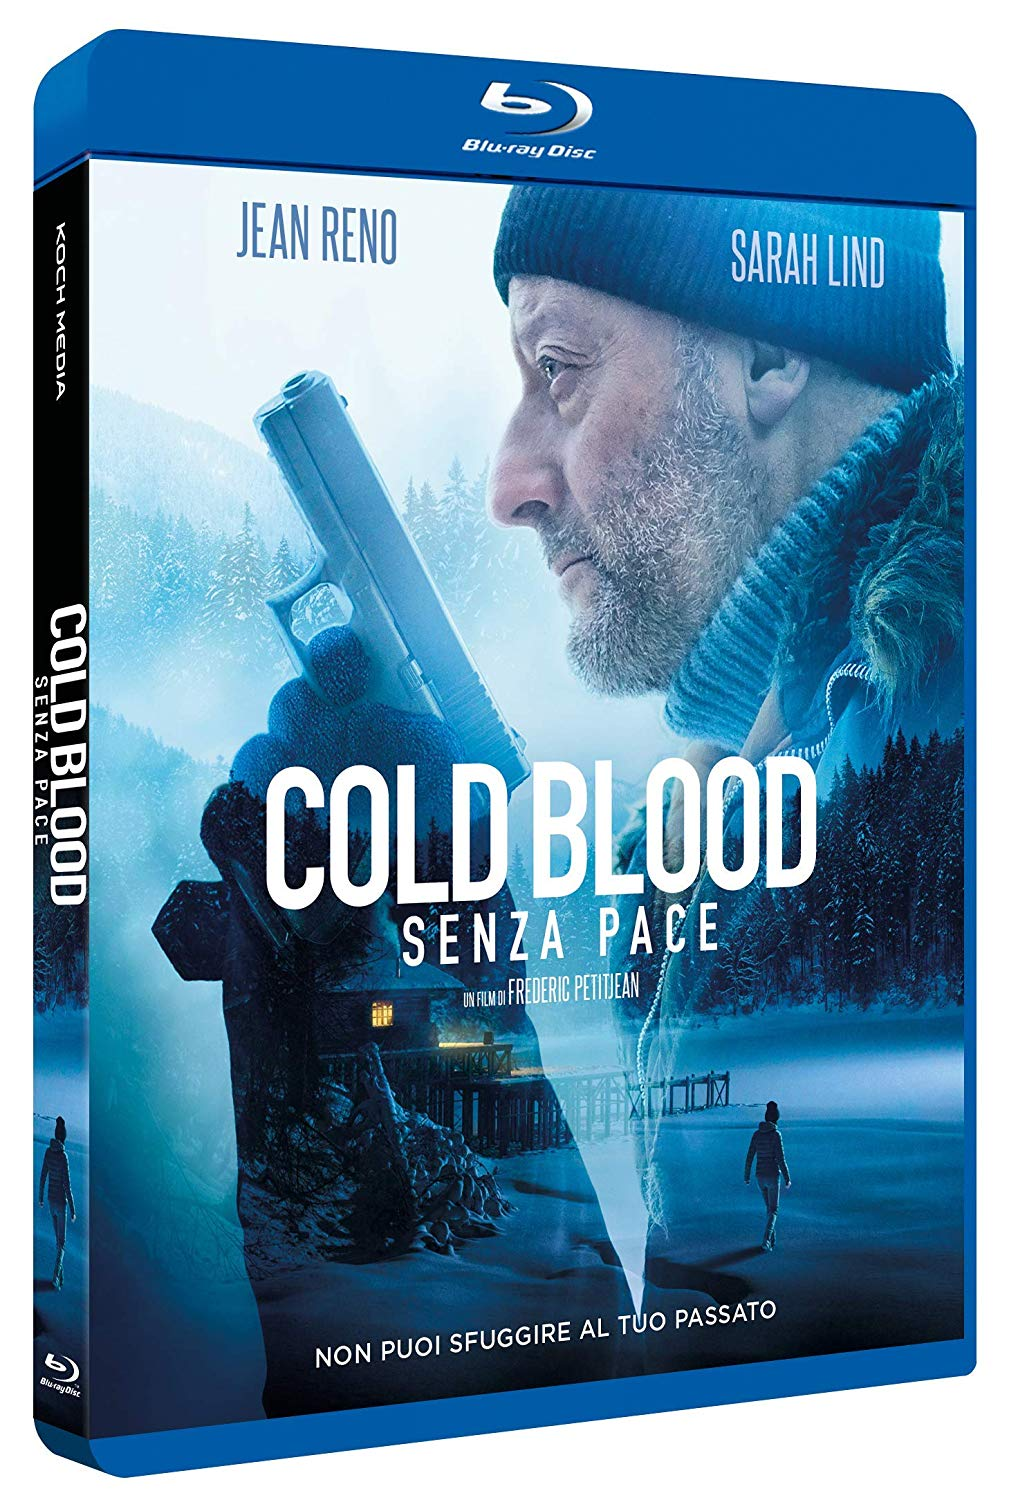 COLD BLOOD - SENZA PACE - BLU RAY